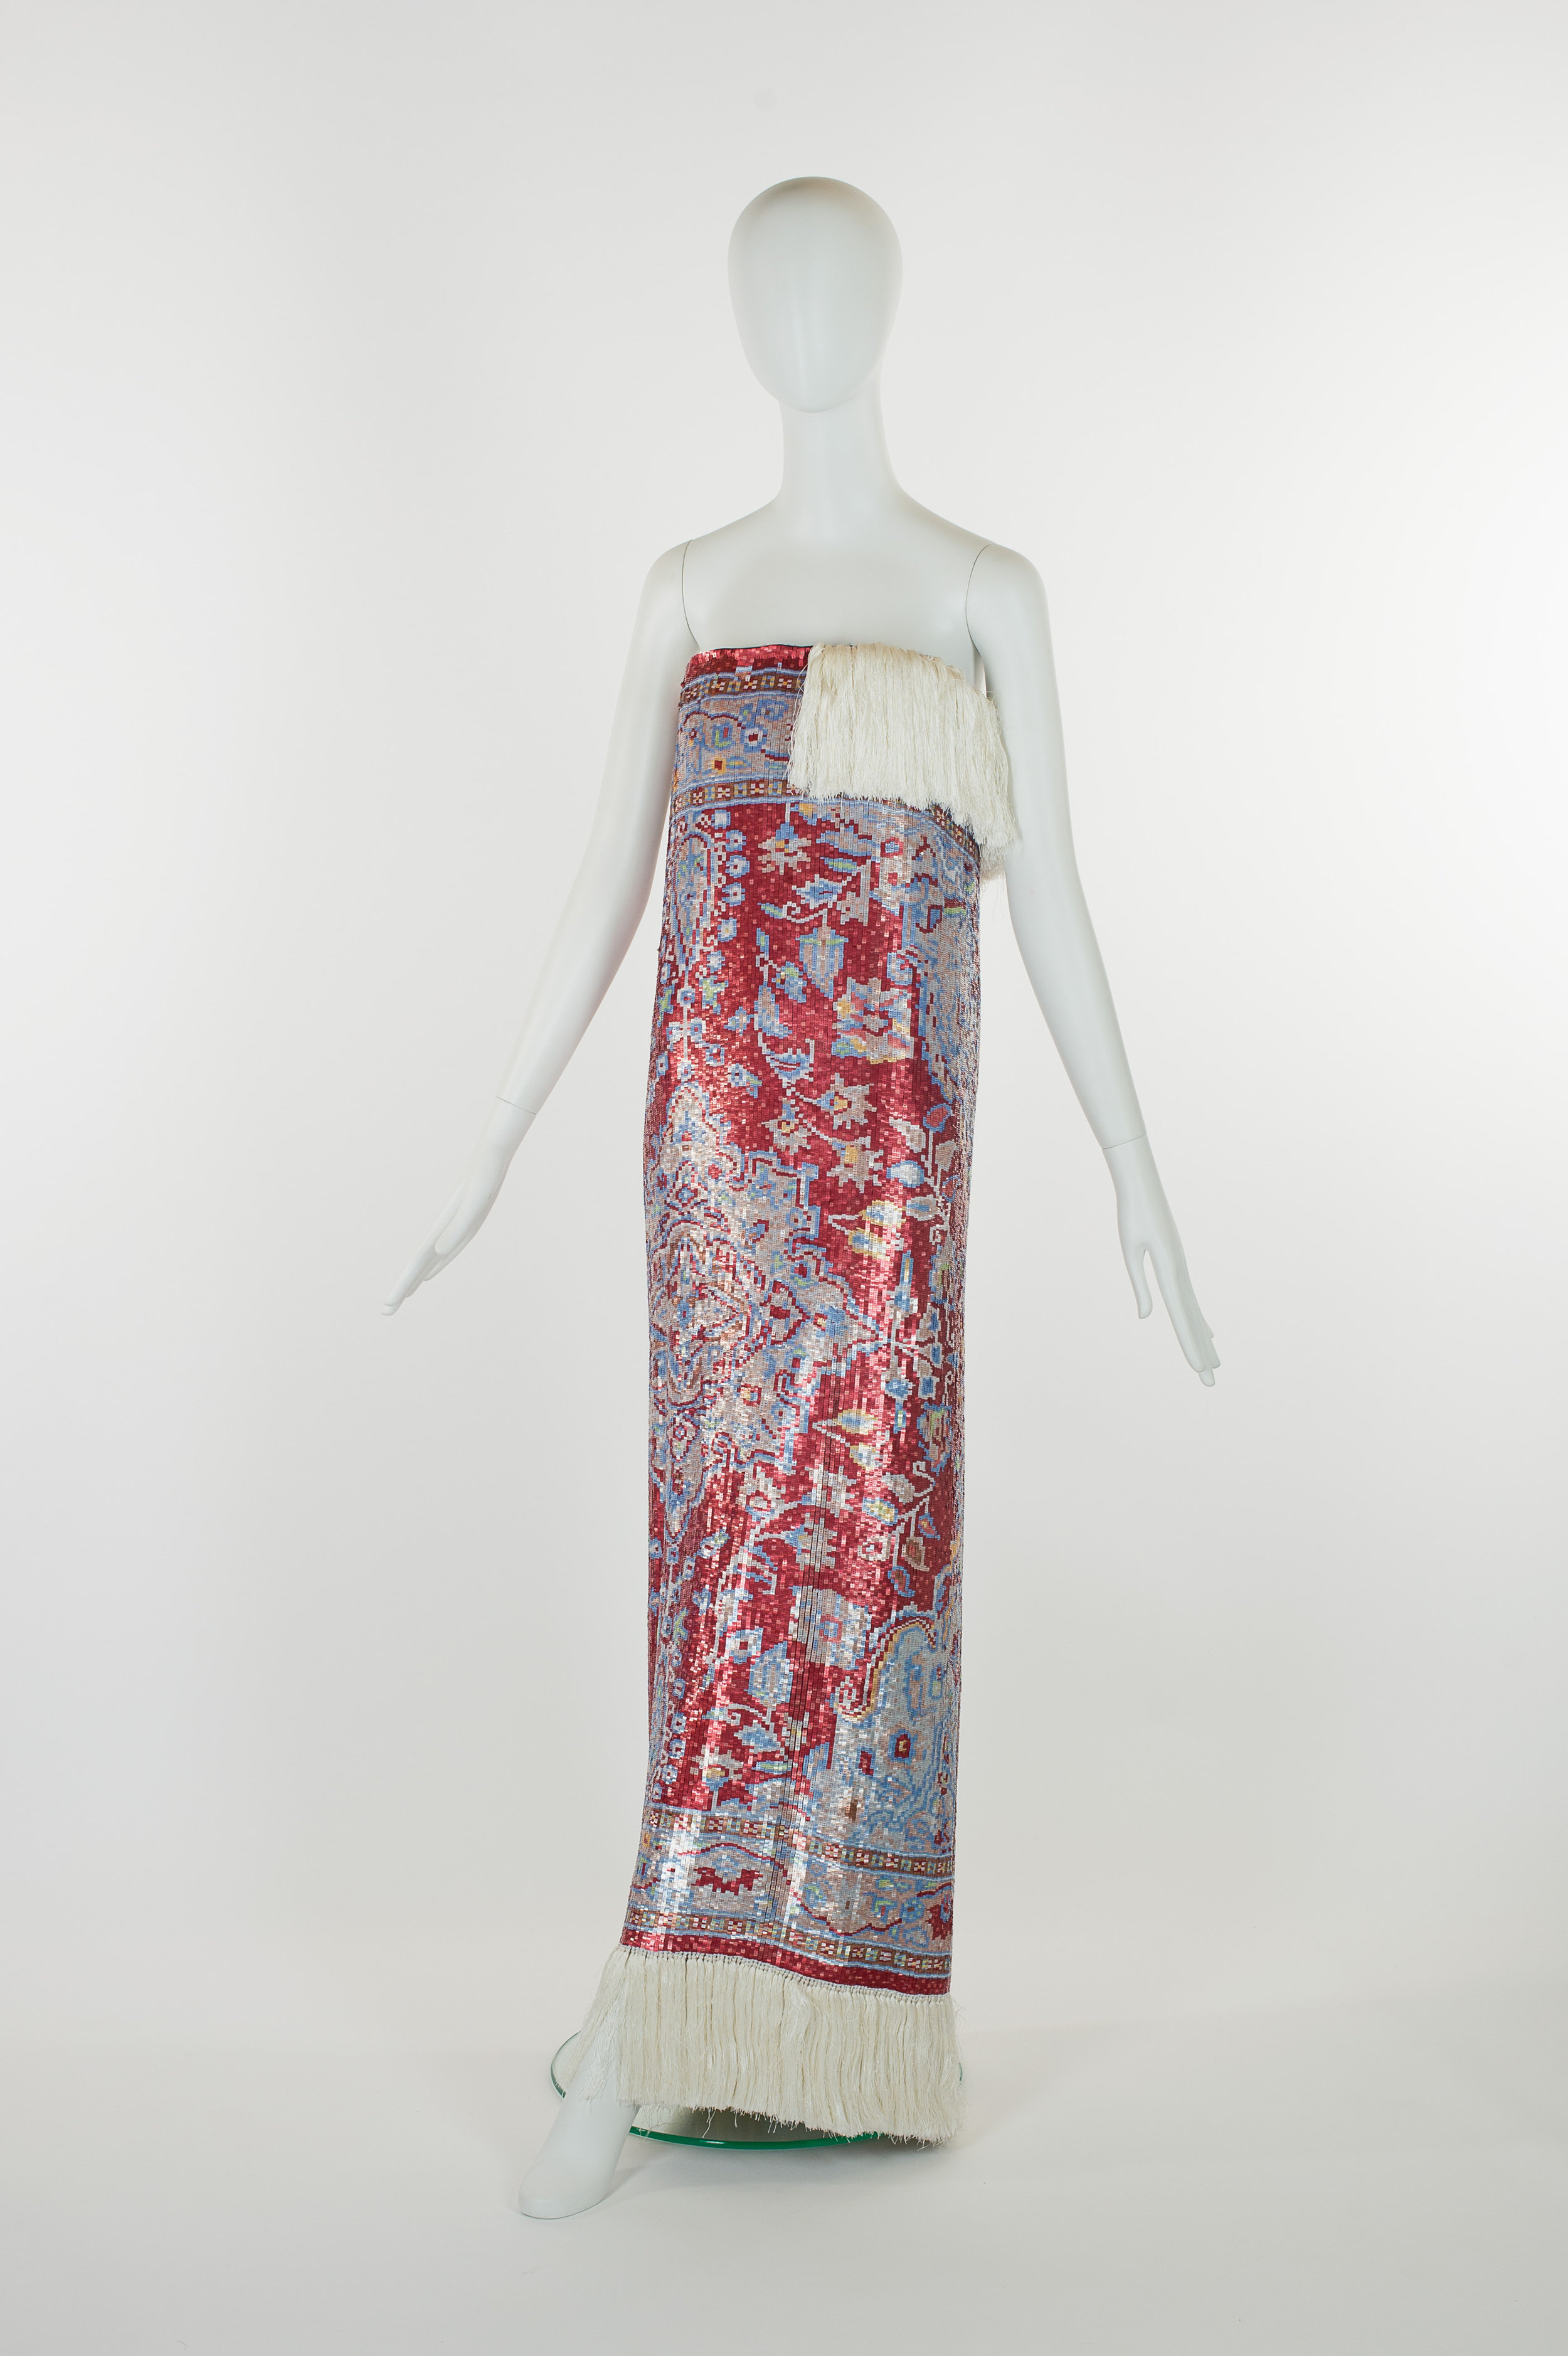 A Martin Margiela designed dress from The Charlotte Smith Fashion Collection.